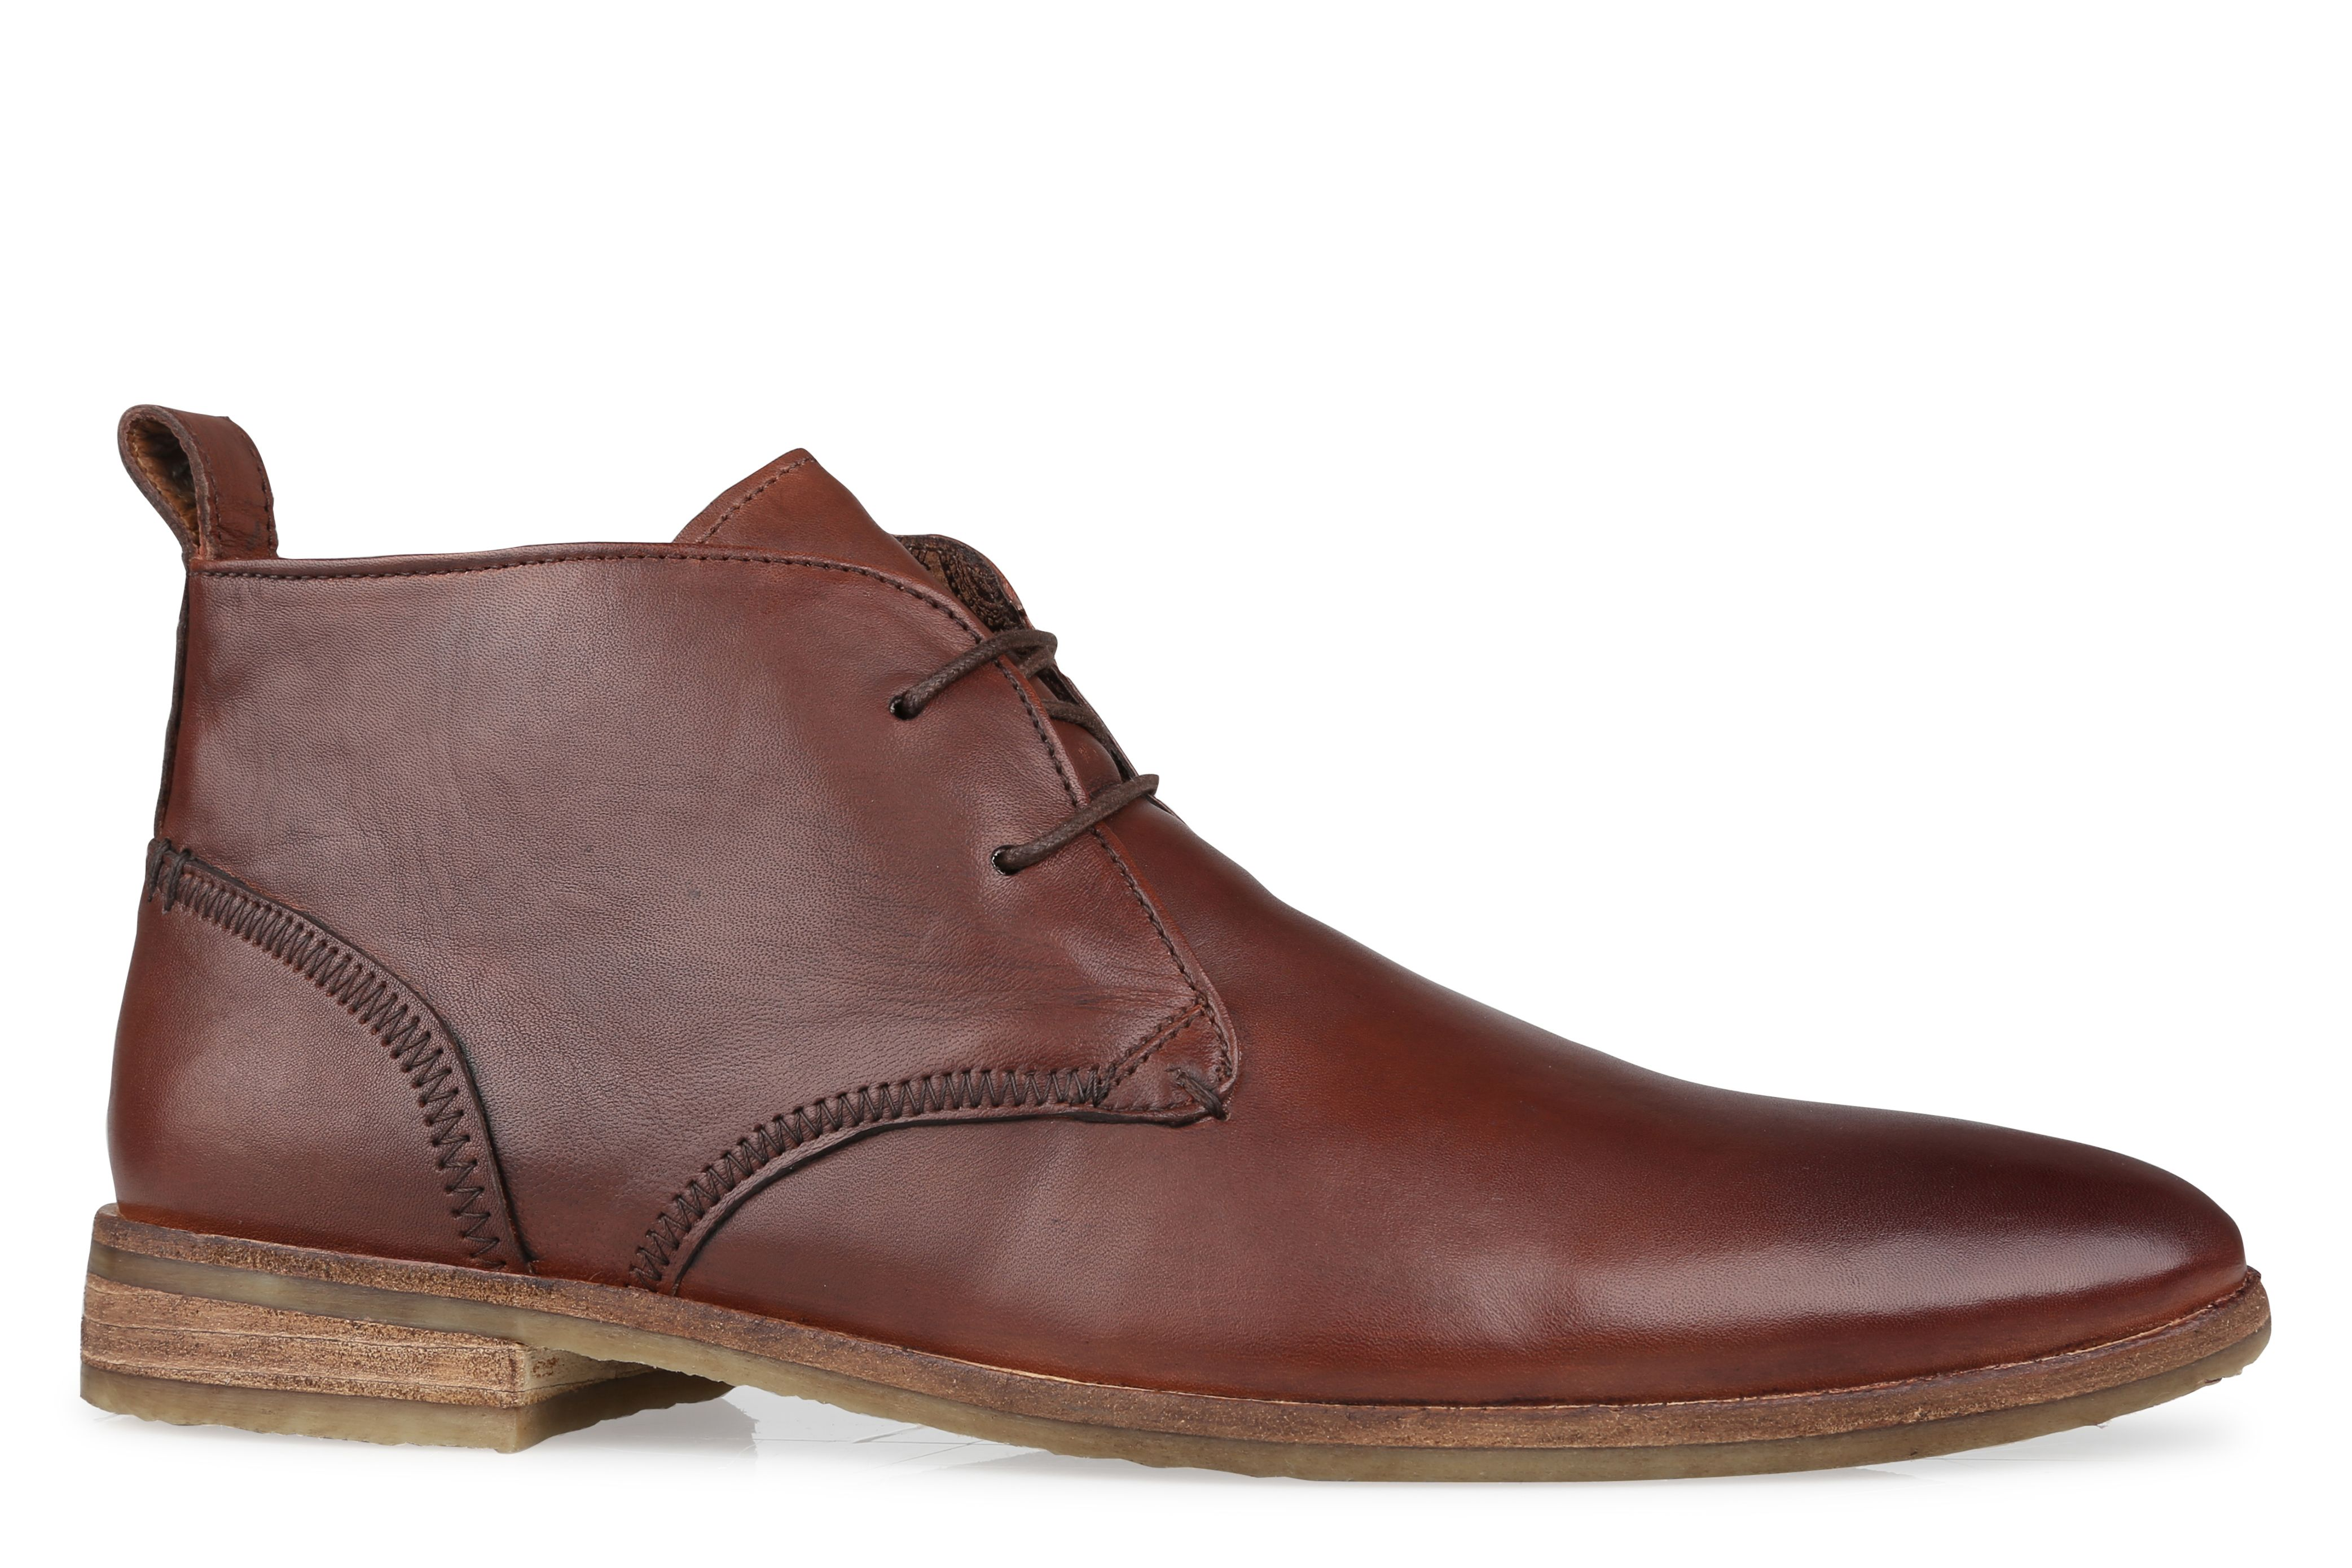 Shoe Connection - Peter James - Player leather lace-up ankle boot in tan. $219.99 https://www.shoeconnection.co.nz/mens/boots/lace-up-boots/peter-james-player-leather-lace-up-boot?c=Tan